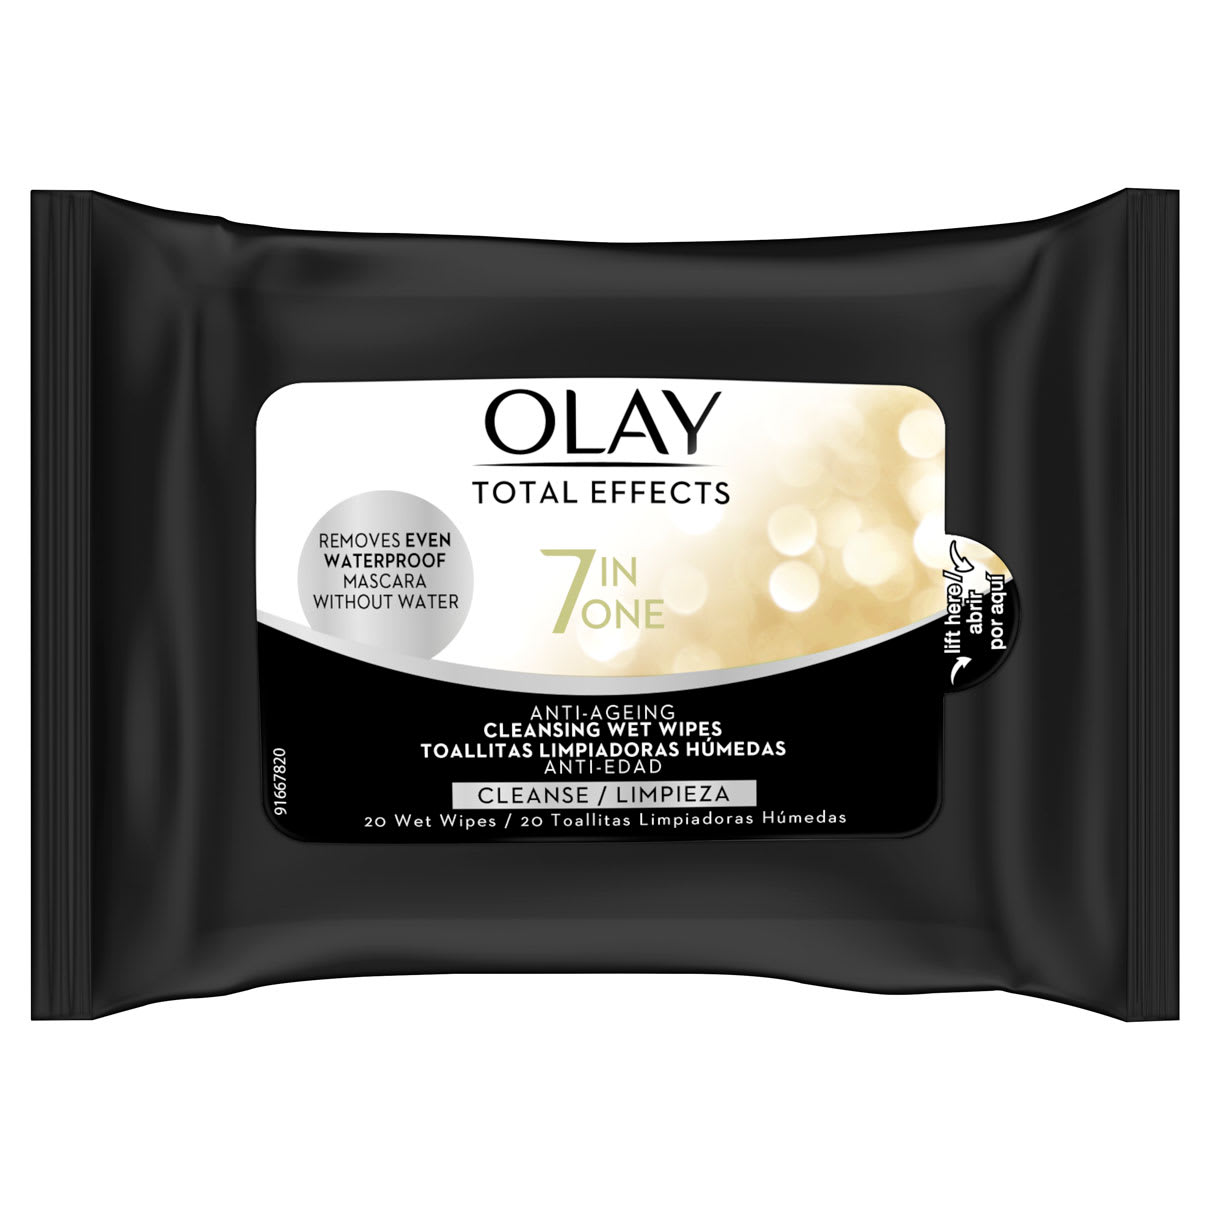 Olay Total Effects 7in1 Age-Defying Wet 20 Wipes